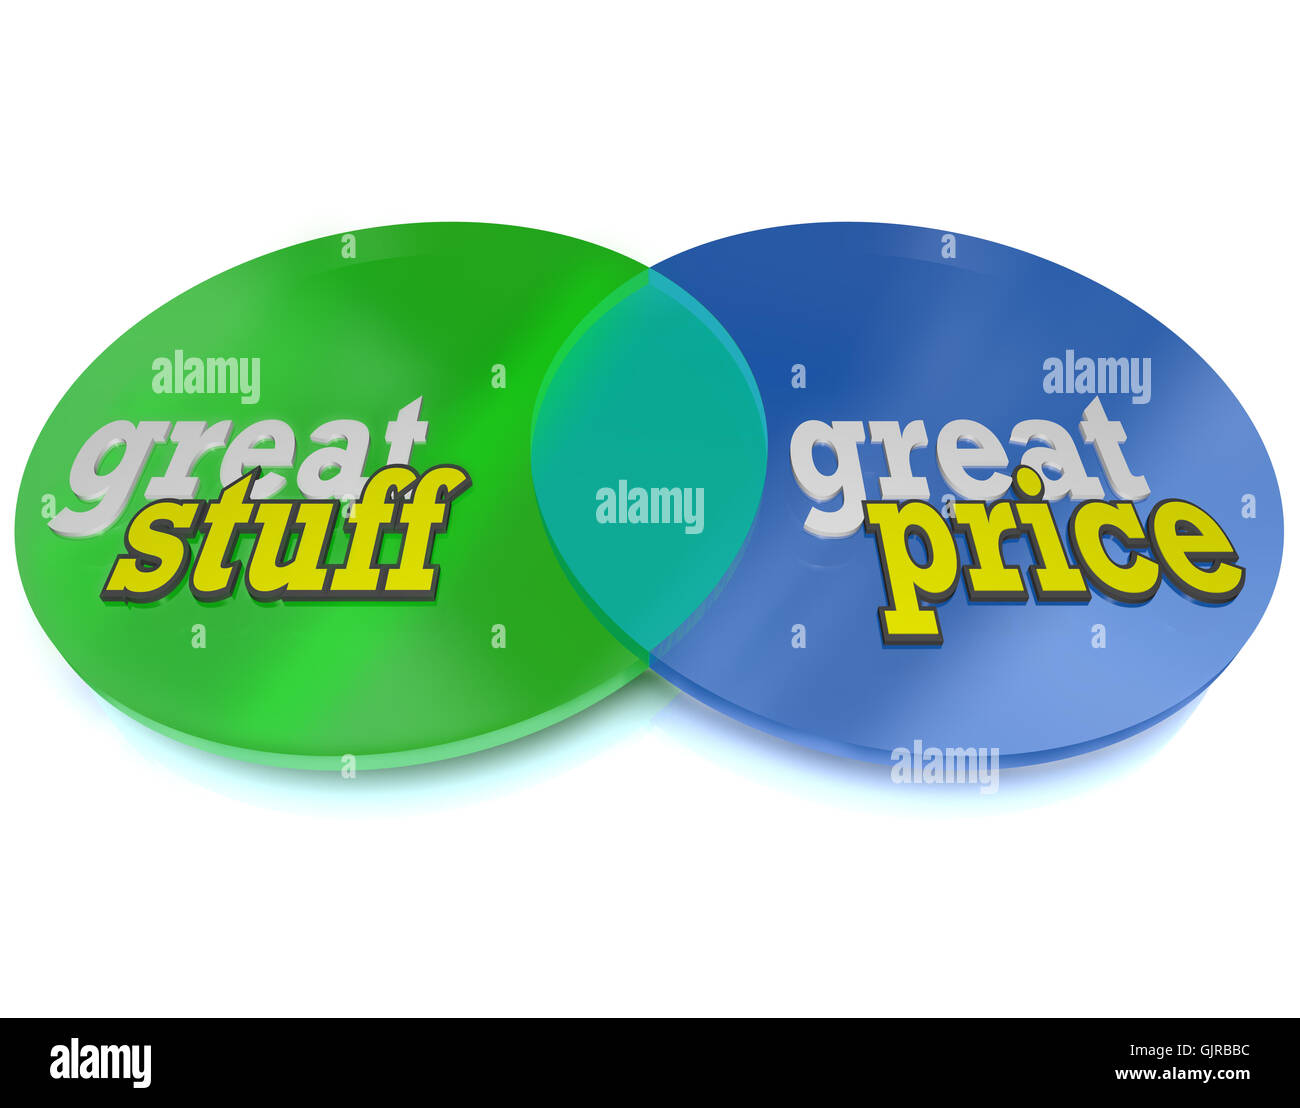 Venn diagram stock photos venn diagram stock images alamy great stuff and affordable price words on venn diagram stock image ccuart Gallery